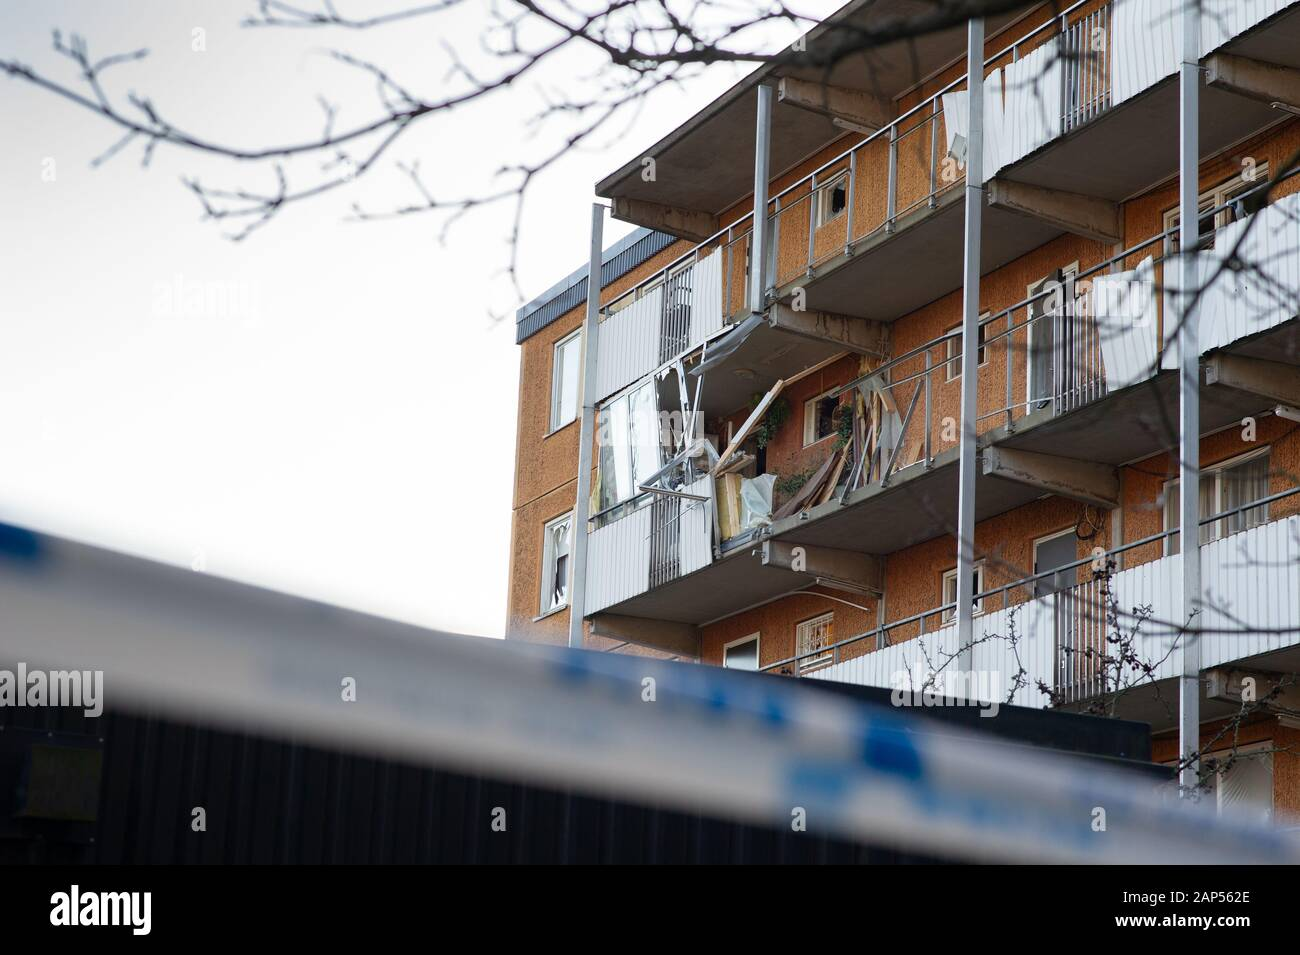 Bomb explosions in Stockholm about 50 people evacuated. Bomb / explosions detonated on two locations in Stockholm this night, in multi-family houses. The first one in Husby, Stockholm at 02:33, and the second in Kista, Stockholm at 02:47 according to the Stockholm Police. Extensive damage to several buildings and cars. Stock Photo